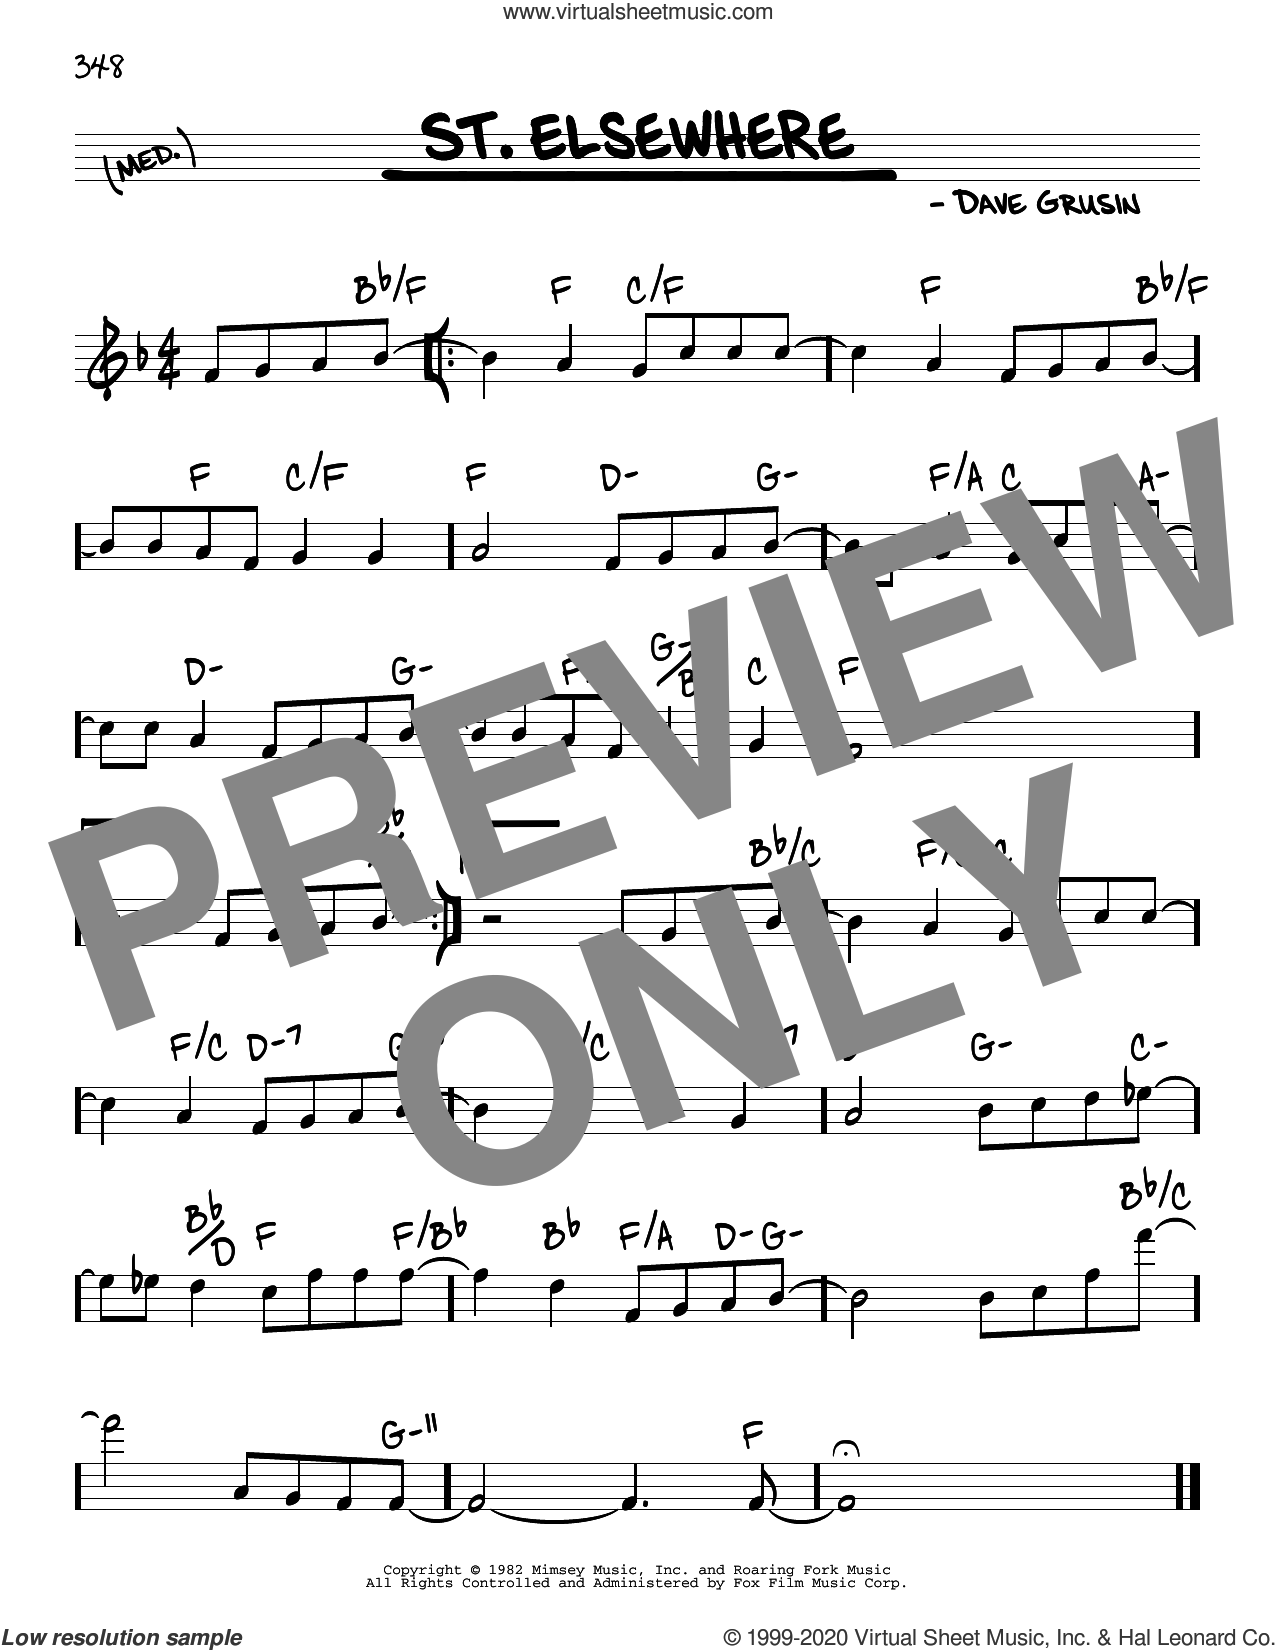 St. Elsewhere sheet music for voice and other instruments (real book) by Dave Grusin, intermediate skill level